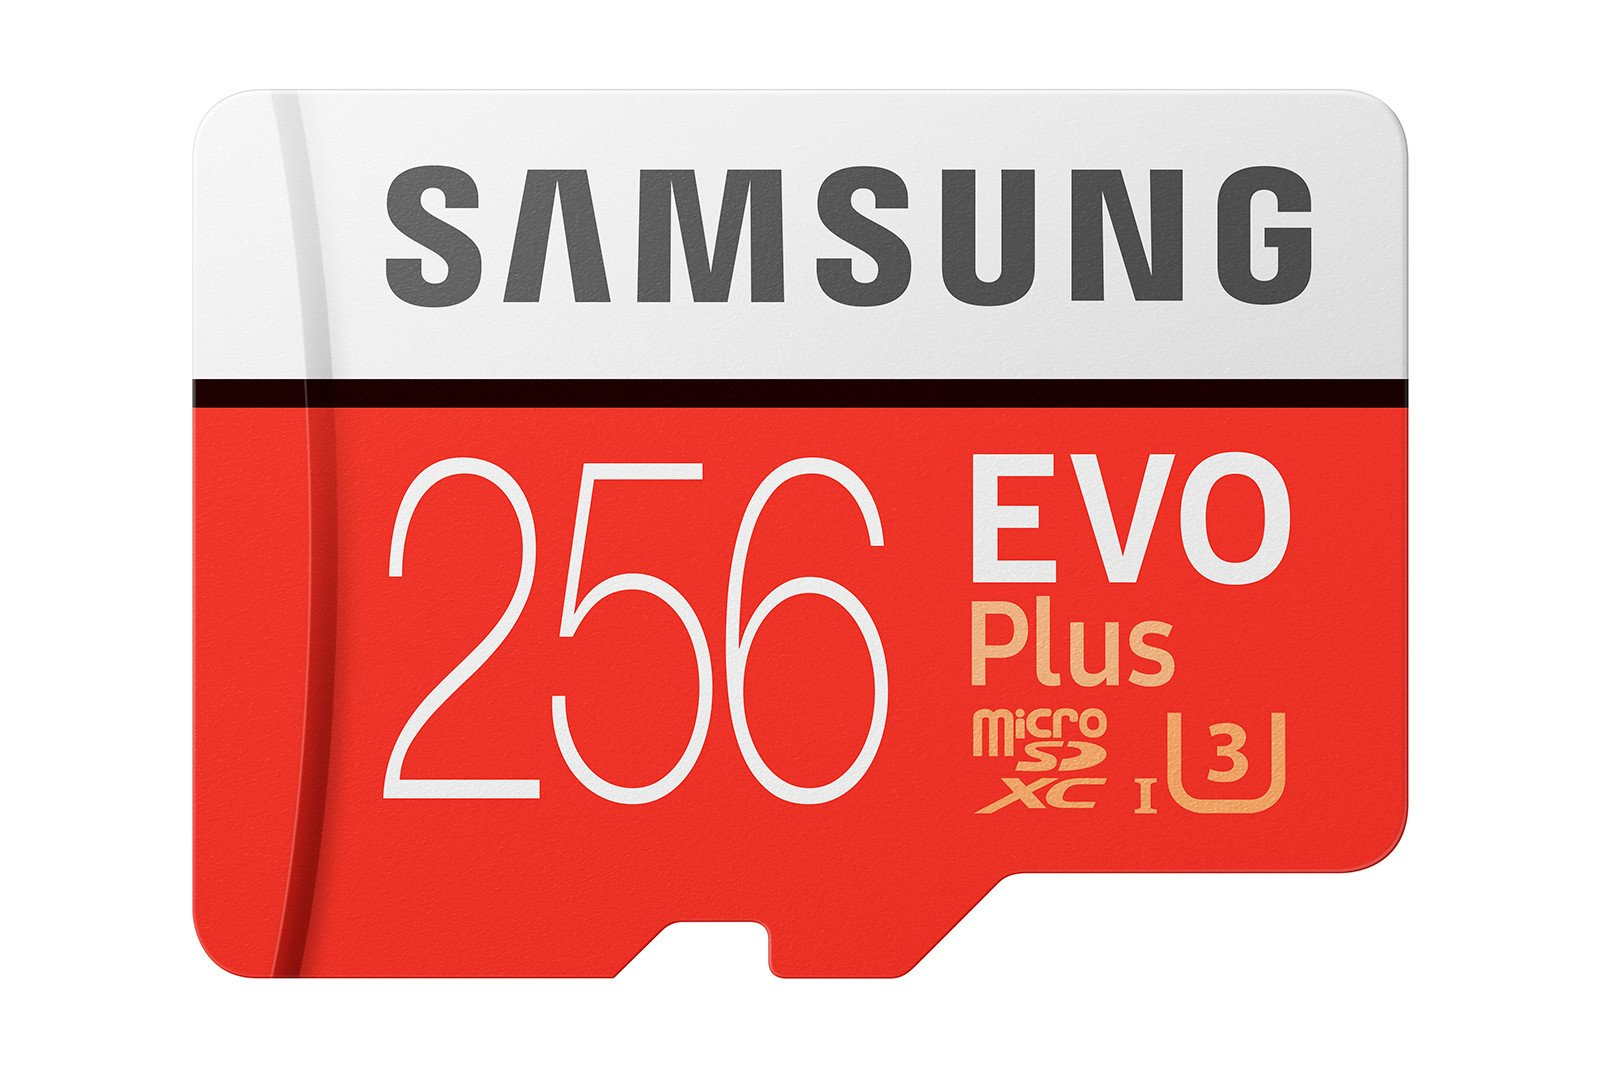 SAMSUNG 32GB EVO Plus MicroSDHC w/Adapter (2017 Model) 4 Samsung Original Models Available: MB-MC32GA, MB-MC64GA, MB-MC128GA, MB-MC256GA Compatible with a wide range of devices for both SD and micro SD (Includes Full-Size SD Adapter.) Excellent Performance for 4K UHD Video and broad compatibility across multiple applications